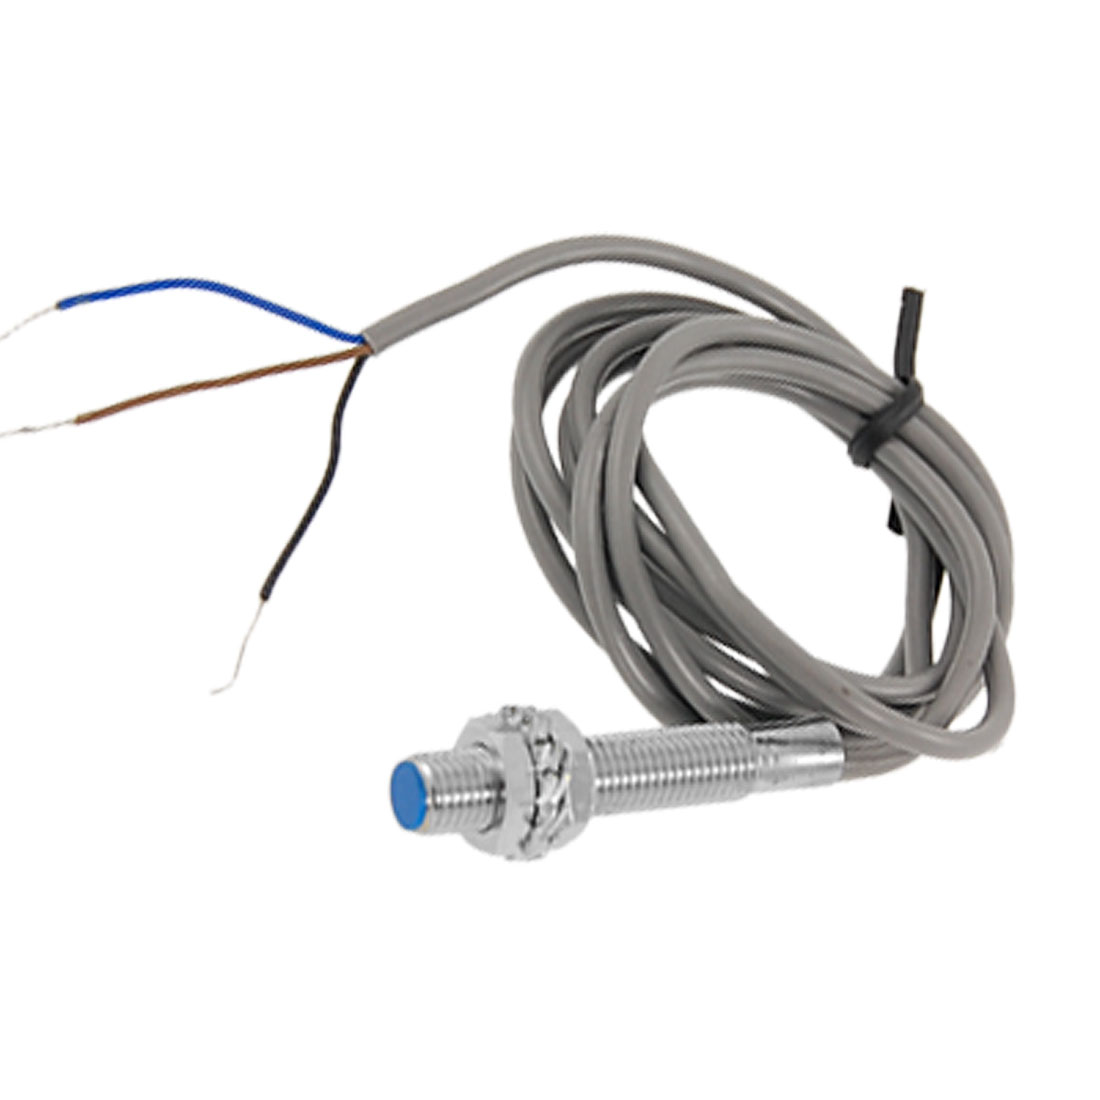 Unique Bargains DC 6-36V 2-wire 1mm Approach Sensor Inductive Proximity NPN Switch LJ8A3-1-Z/BX